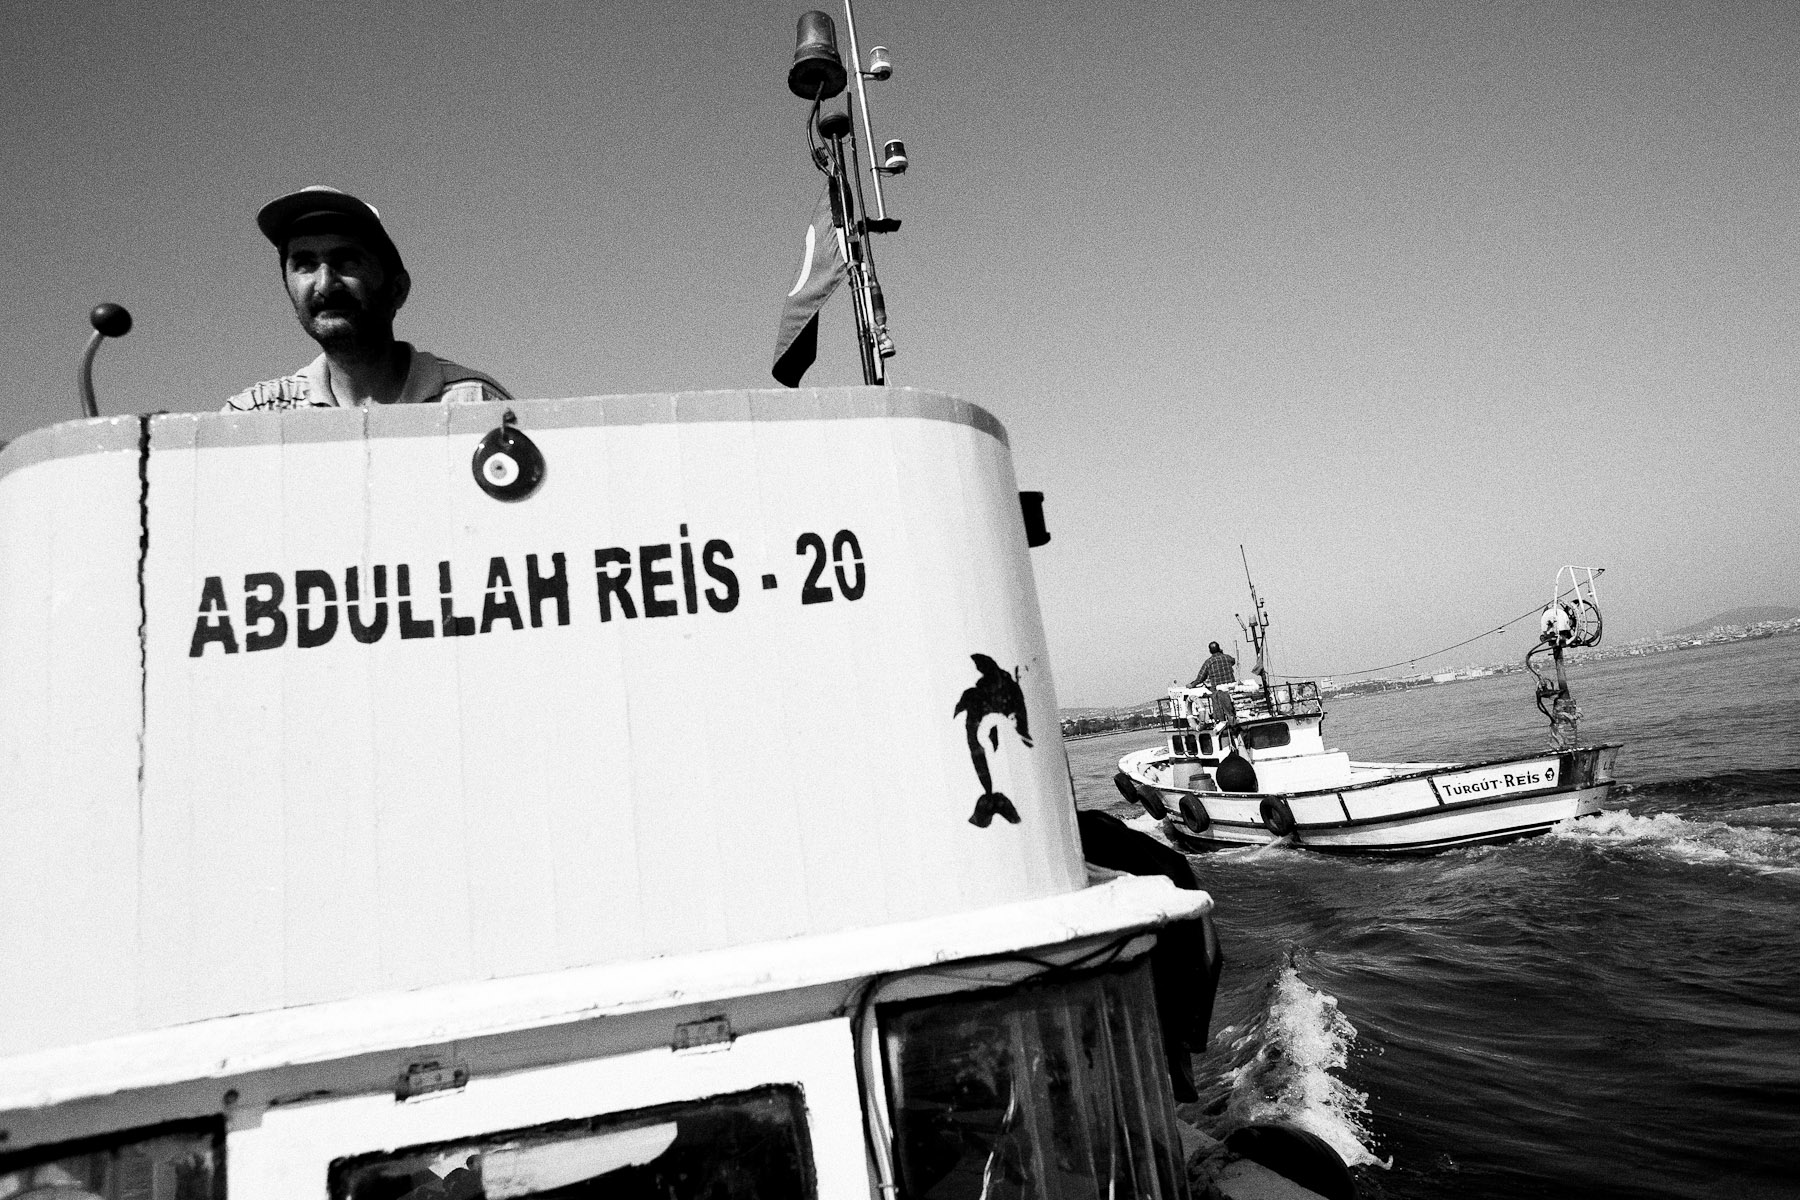 Adem's boat is one of a relatively small number of small boats that stay on the Marmara sea, after the fish move to a colder climate up the Mediterranean and the big boats follow them.